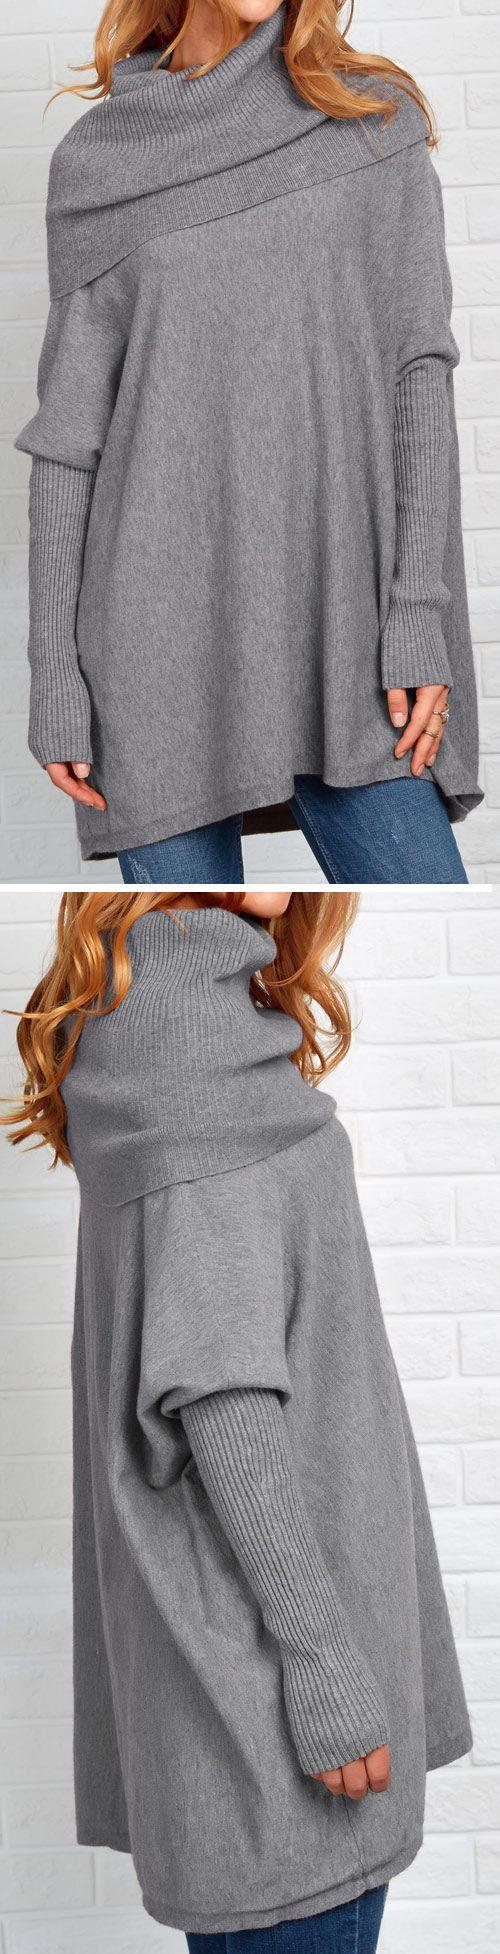 Show free style with $35.99/Free shipping! This long solid color sweater is featured by turtle neck&bat sleeve. Be the true Variety Queen through this basic babe at Cupshe.com!